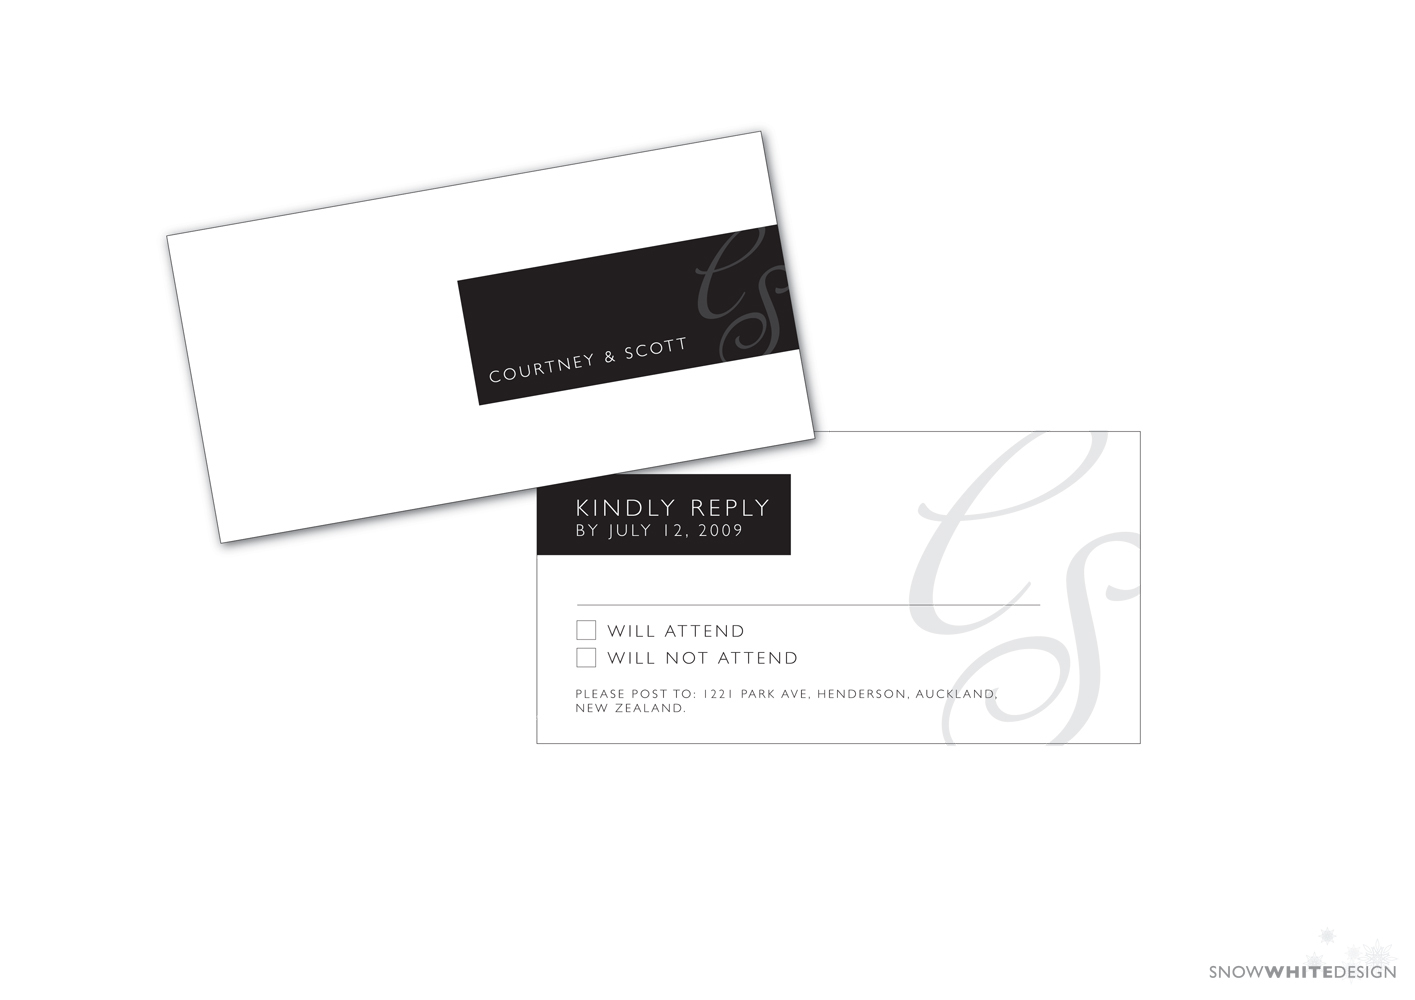 DIY, white, black, Grey, Rsvp, Design, Card, Snow, Response, Snow white design